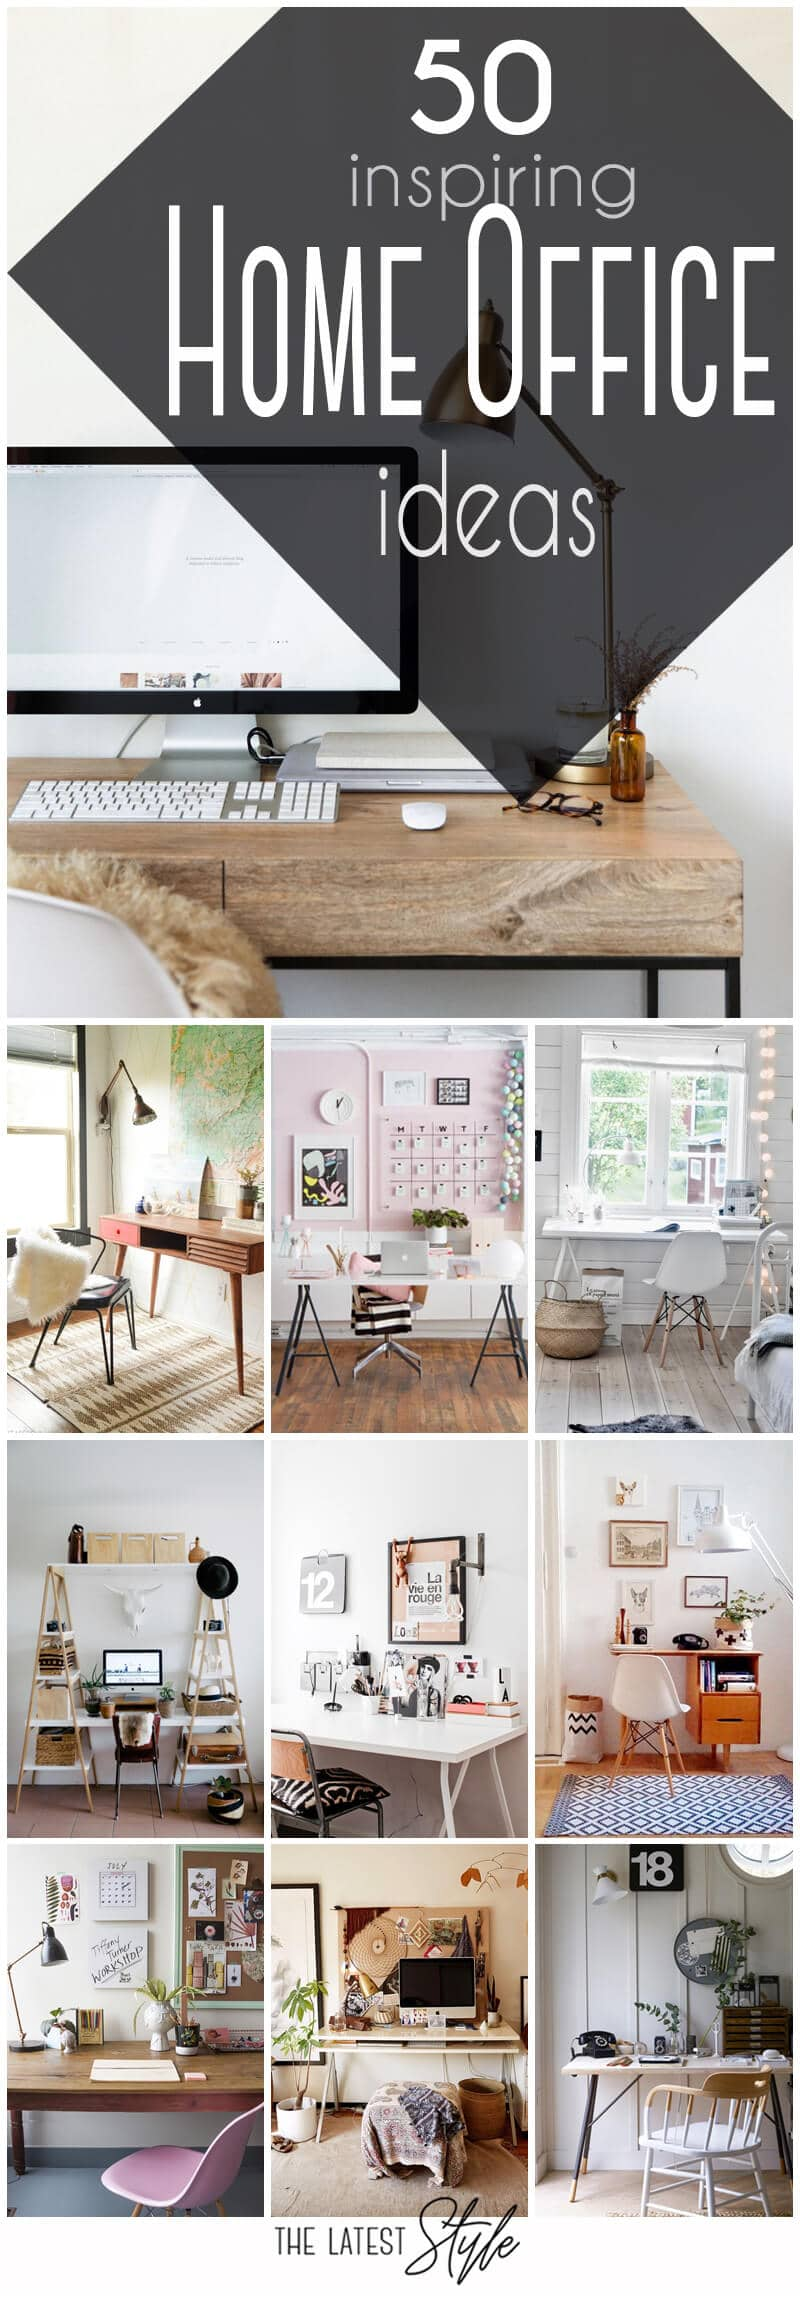 Designs for Home Office